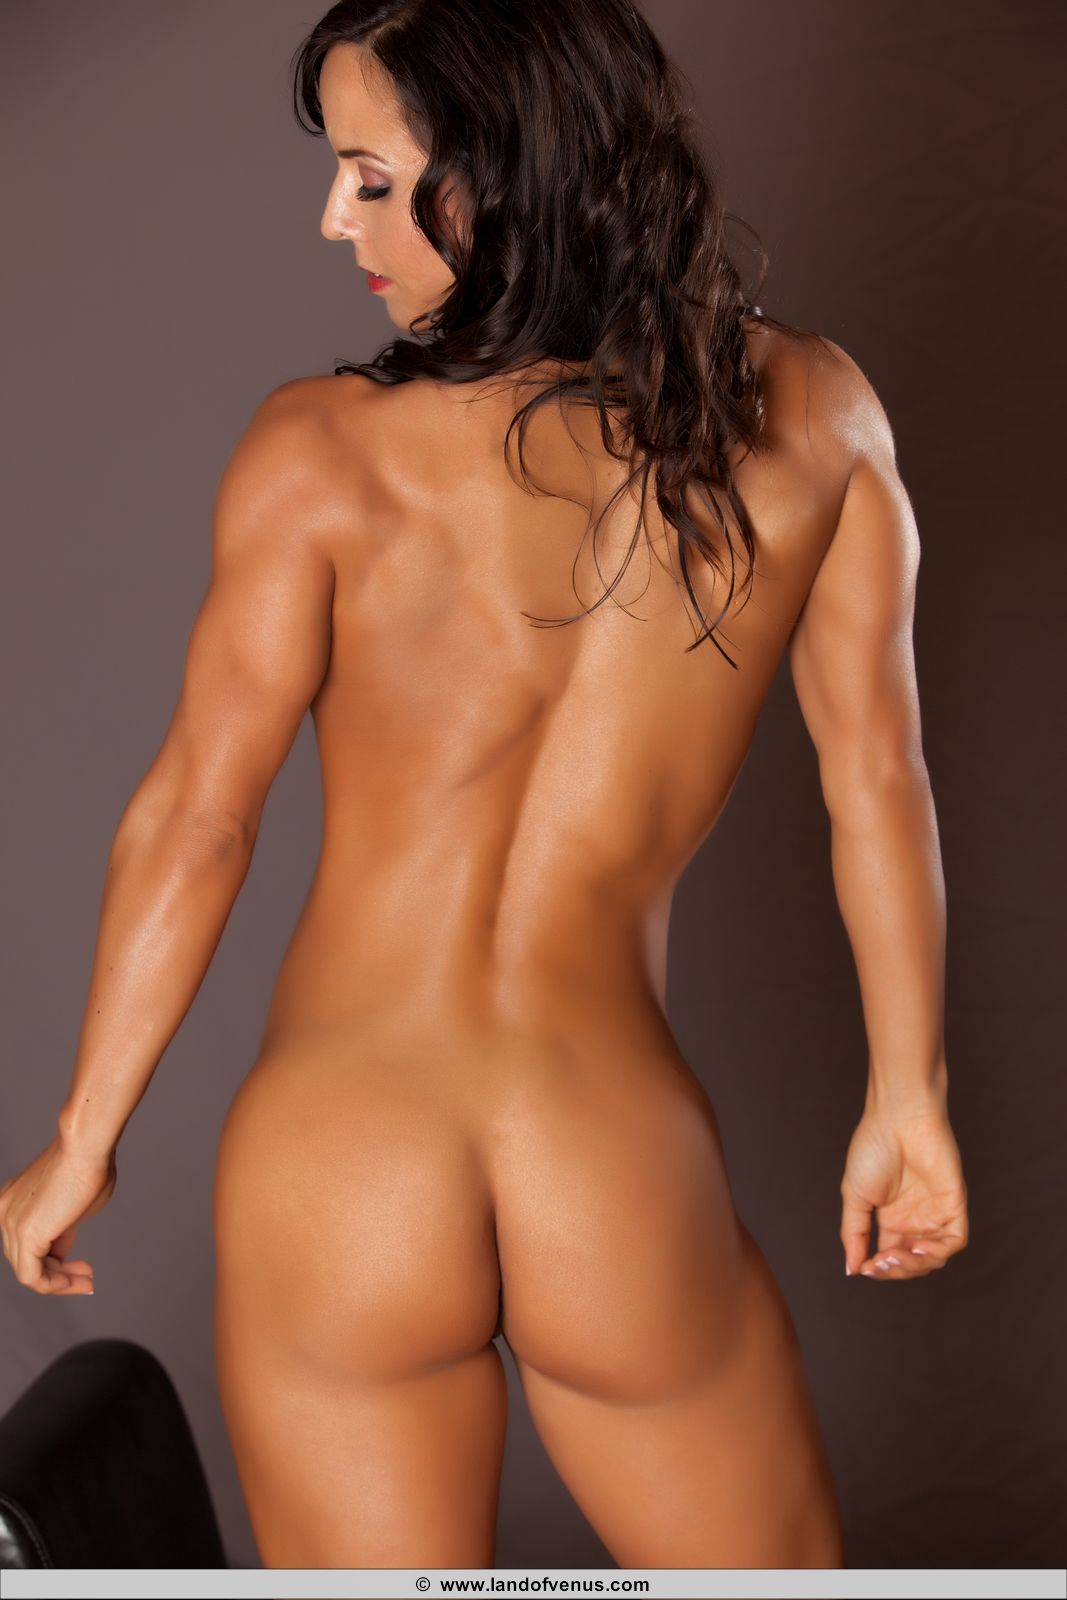 Female fitness model naked nude